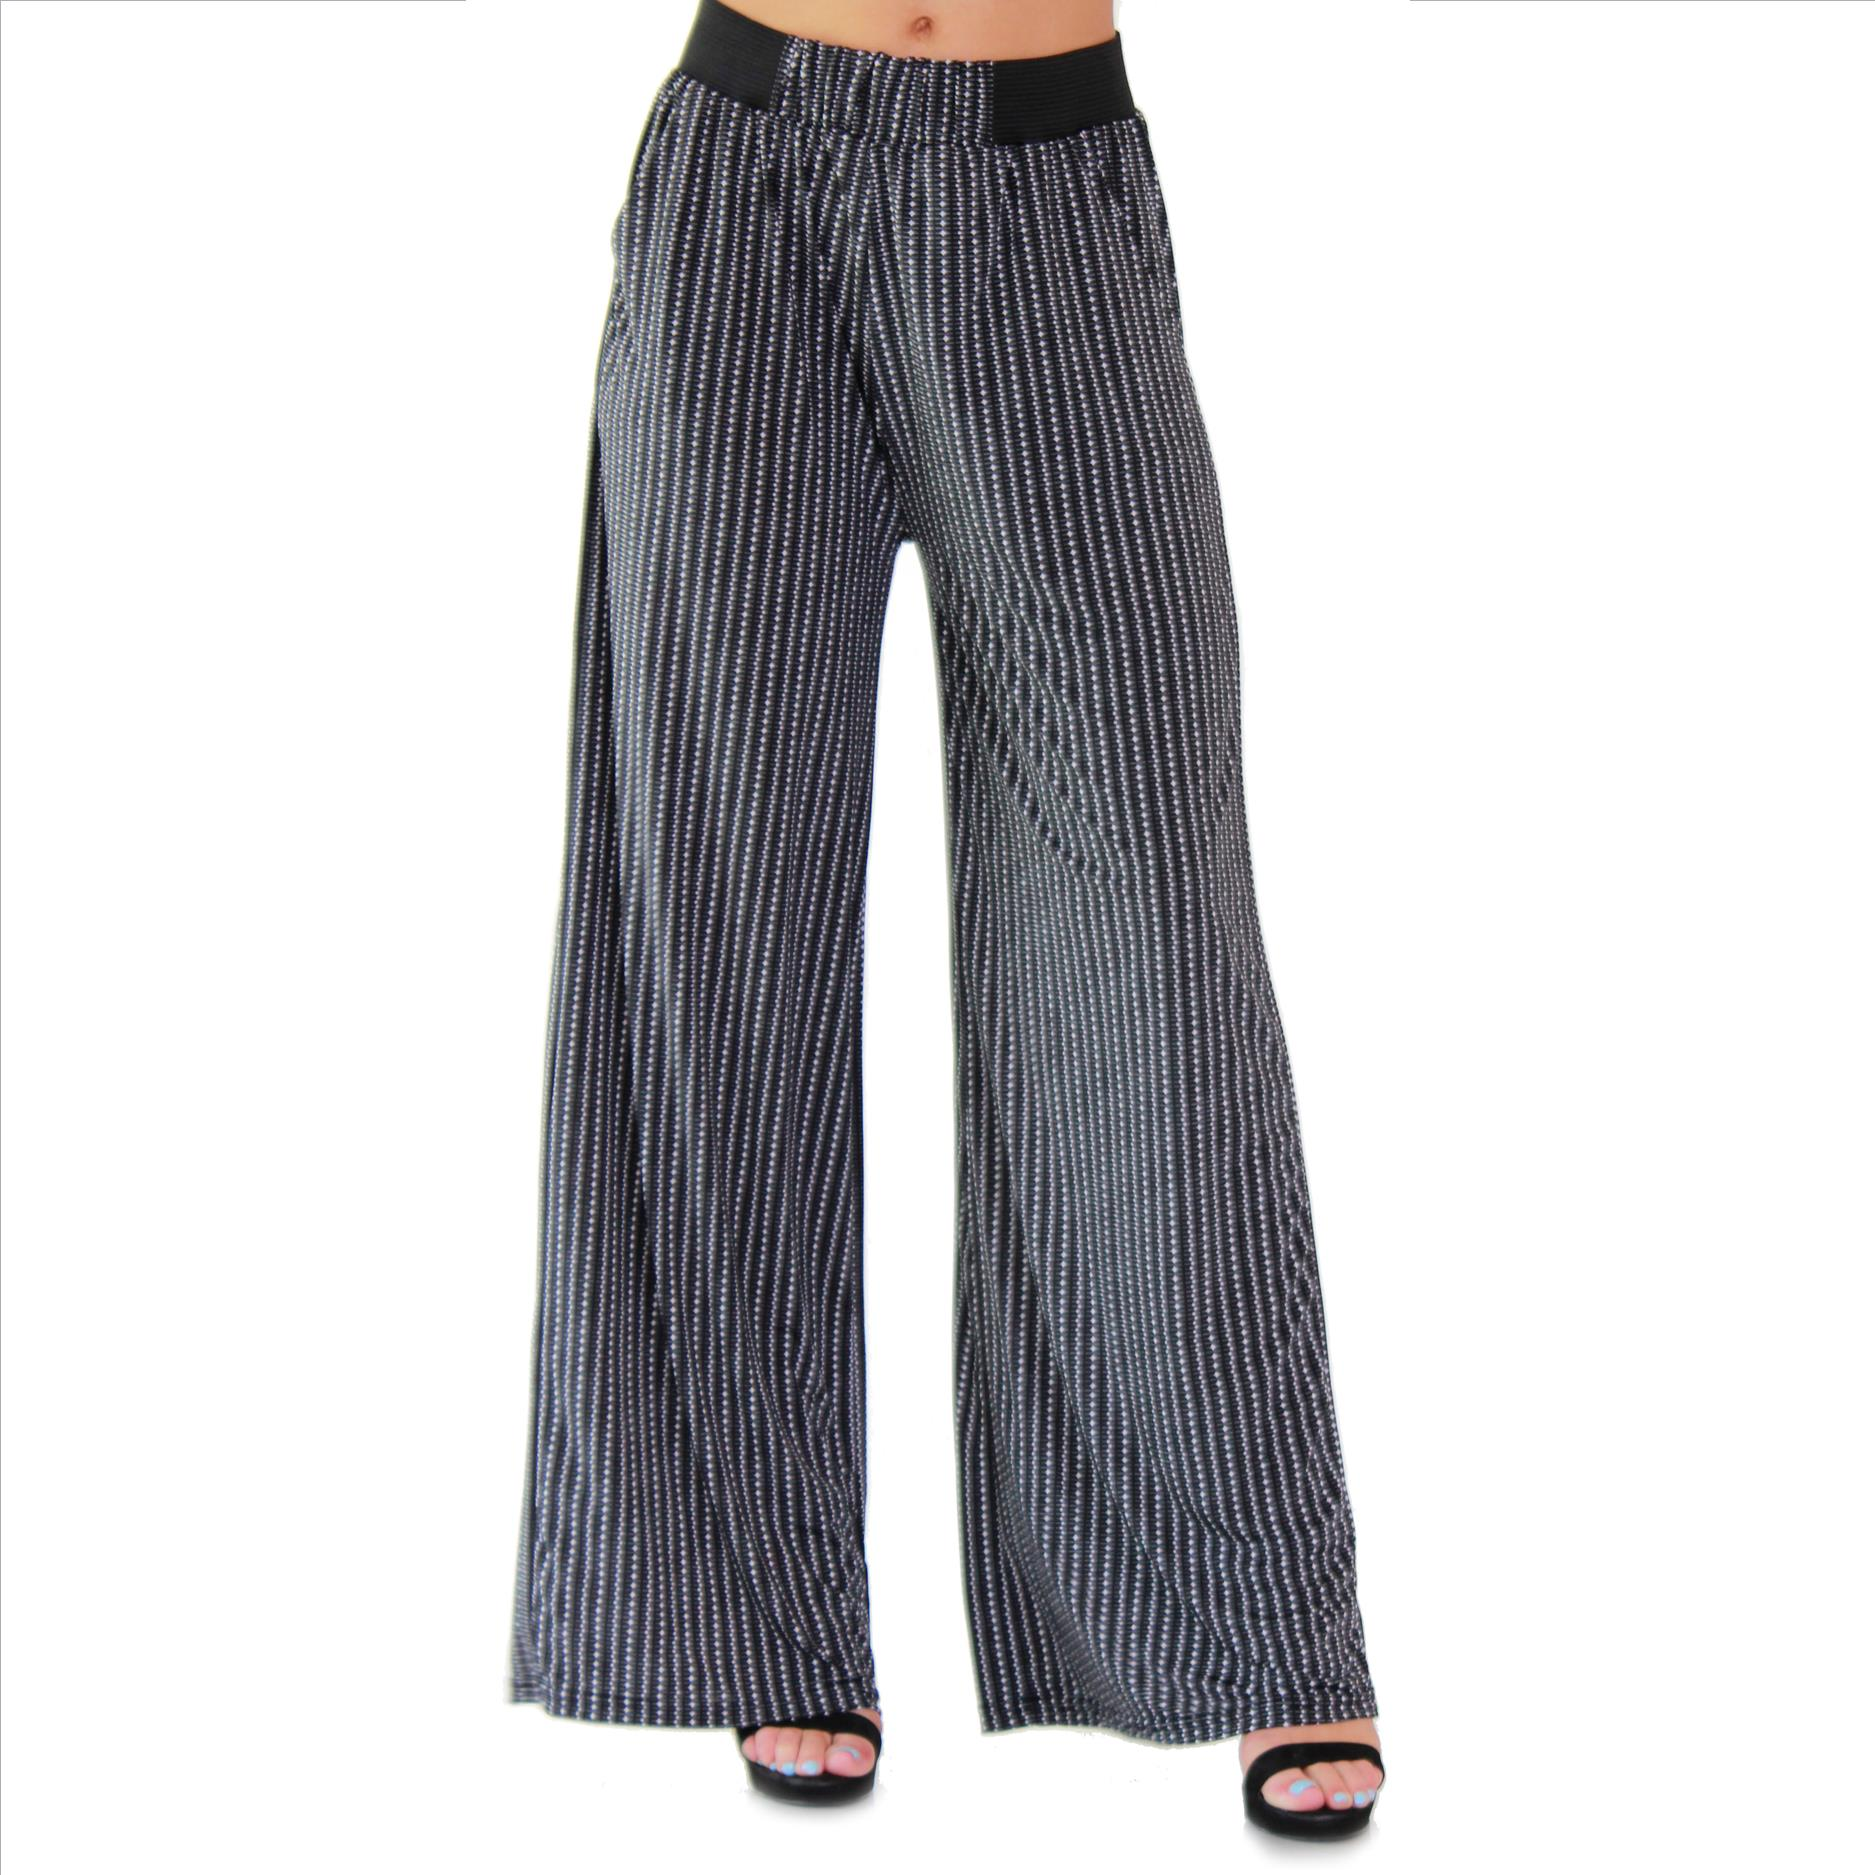 Amazing Palazzo Pants with Pockets - #190